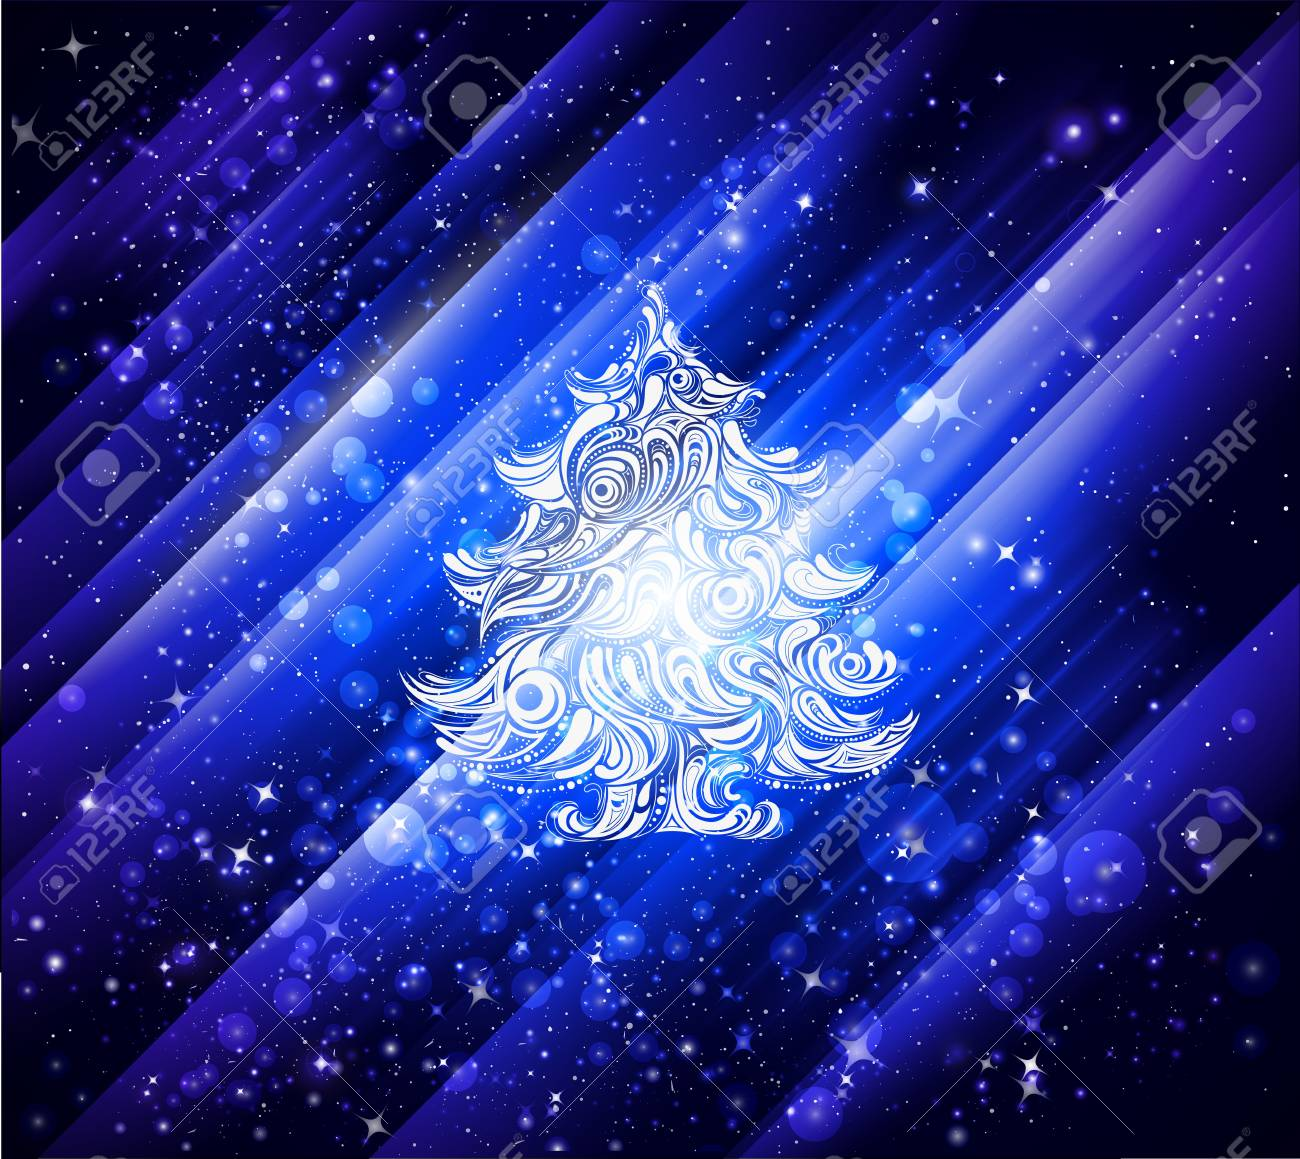 blue christmas wallpaper background Stock Photo - 8405975